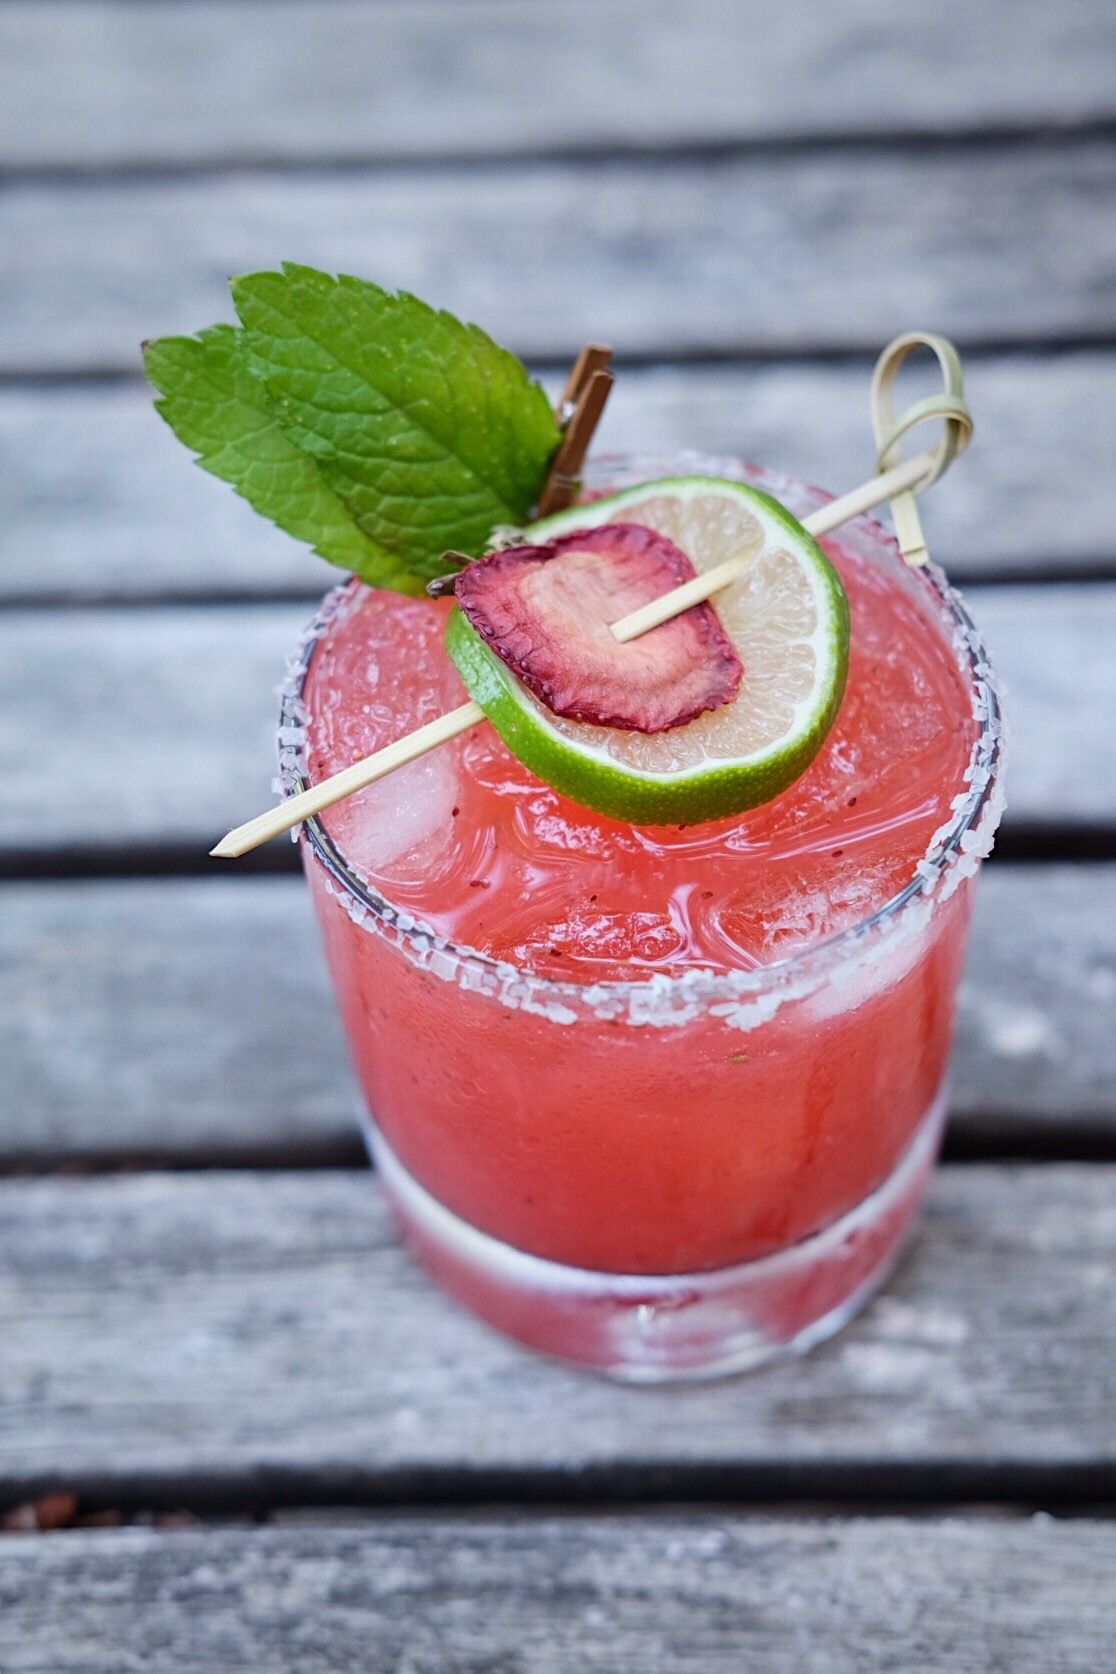 ingredients: - 2 oz reposado tequila1 1/2 oz strawberry puree1/2 oz fresh lime juice3/4 oz rhubarb simple syrupGarnish: Fresh mint, lime wheel & dehydrated strawberry